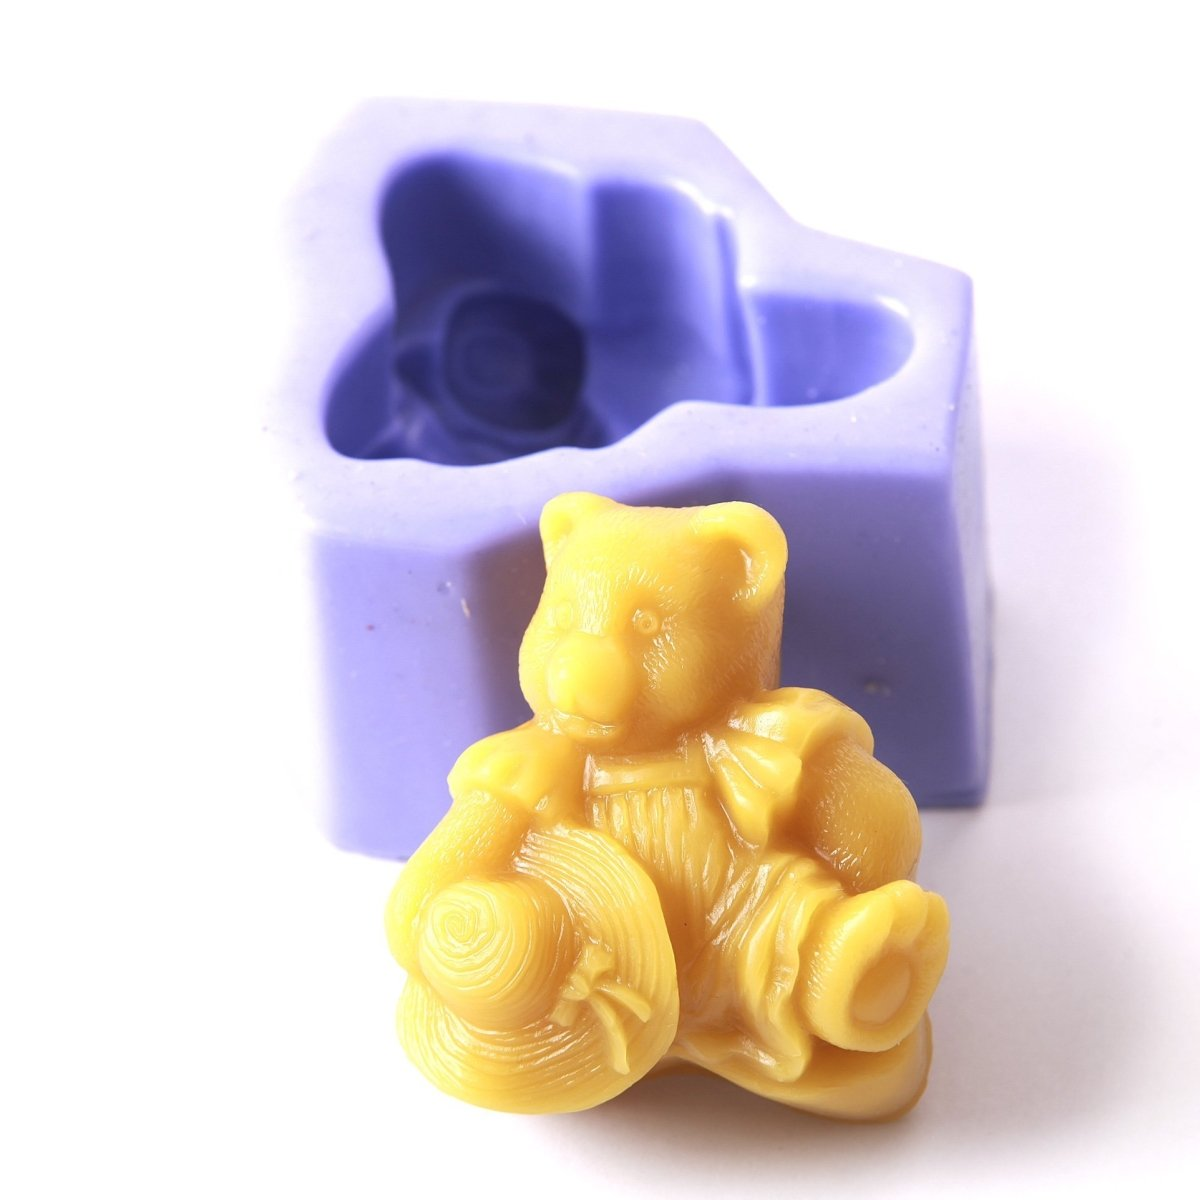 Antique Teddy Silicone Soap Mould H0017 - Mystic Moments UK